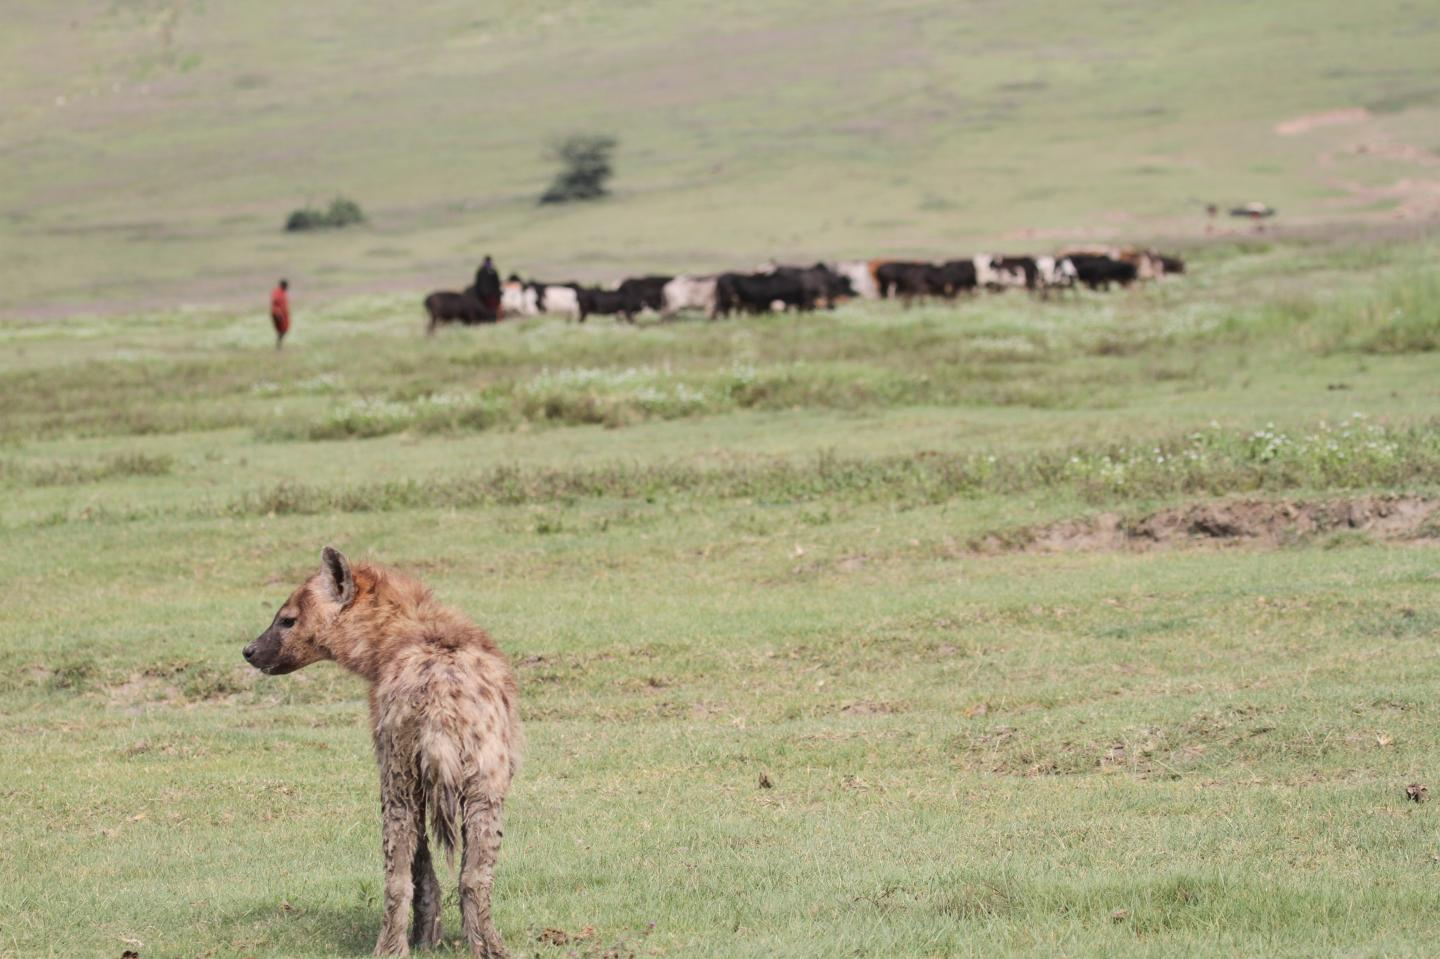 Spotted hyena with Maasai pastoralist and cattle in Ngorongoro Crater